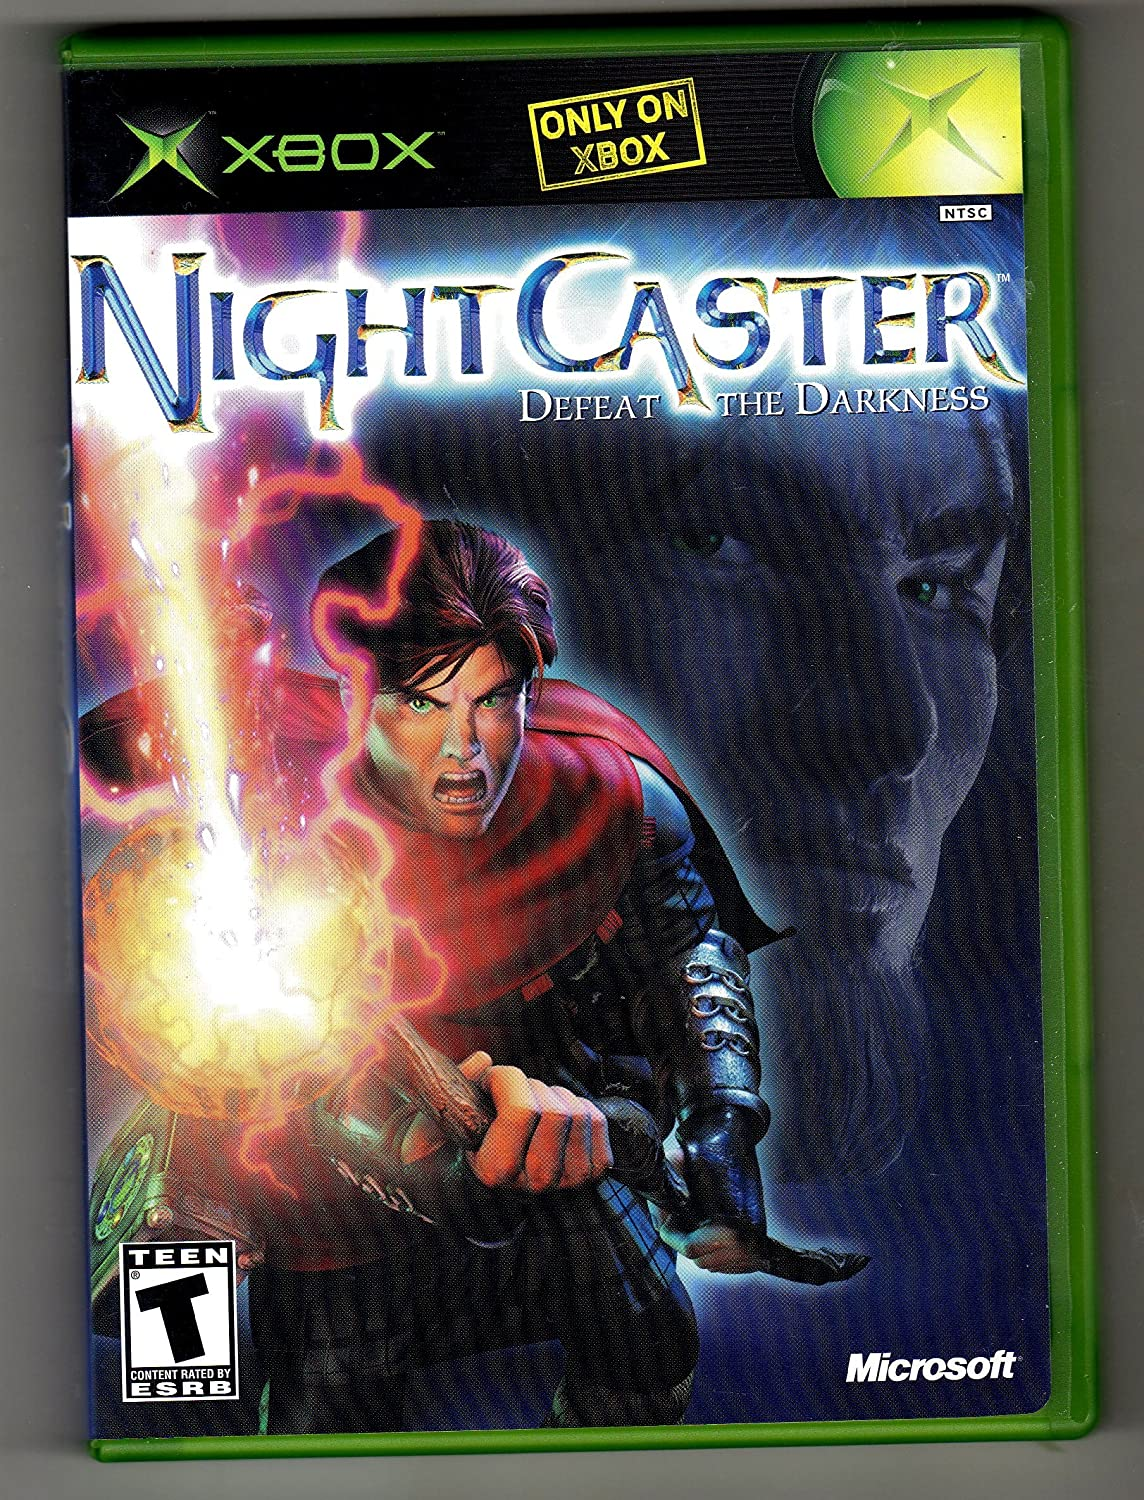 Amazon.com: NightCaster: Defeat The Darkness: Unknown: Video ...